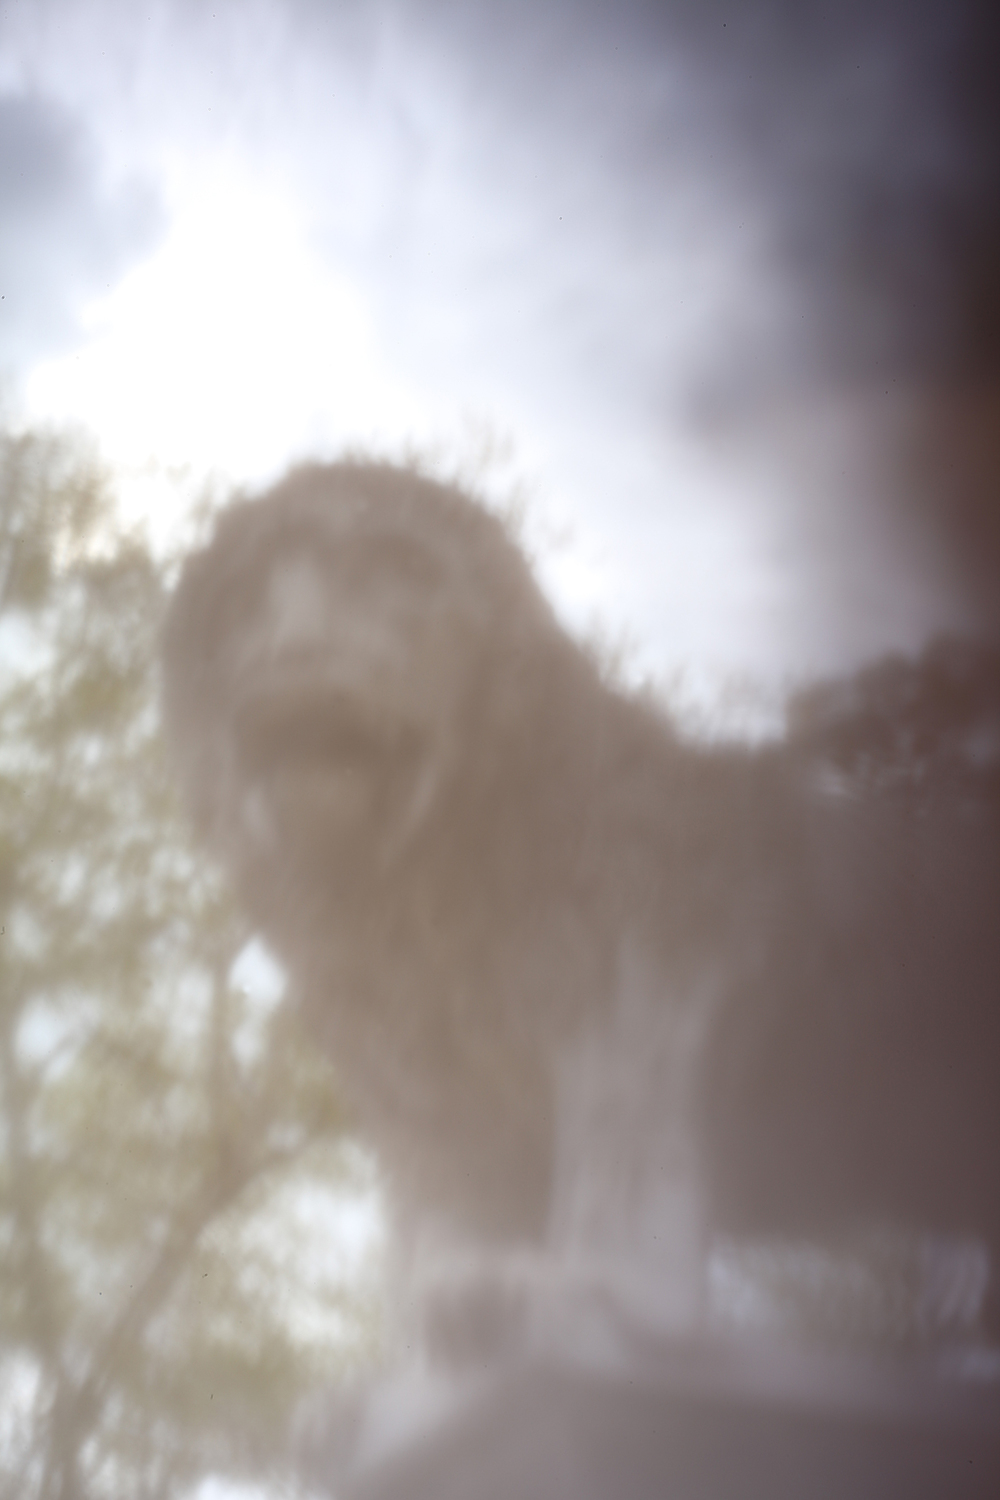 'The Dream', 2011/15, Pinhole photograph, laser-print on 180gsm cartridge paper, 12 x 18 cm